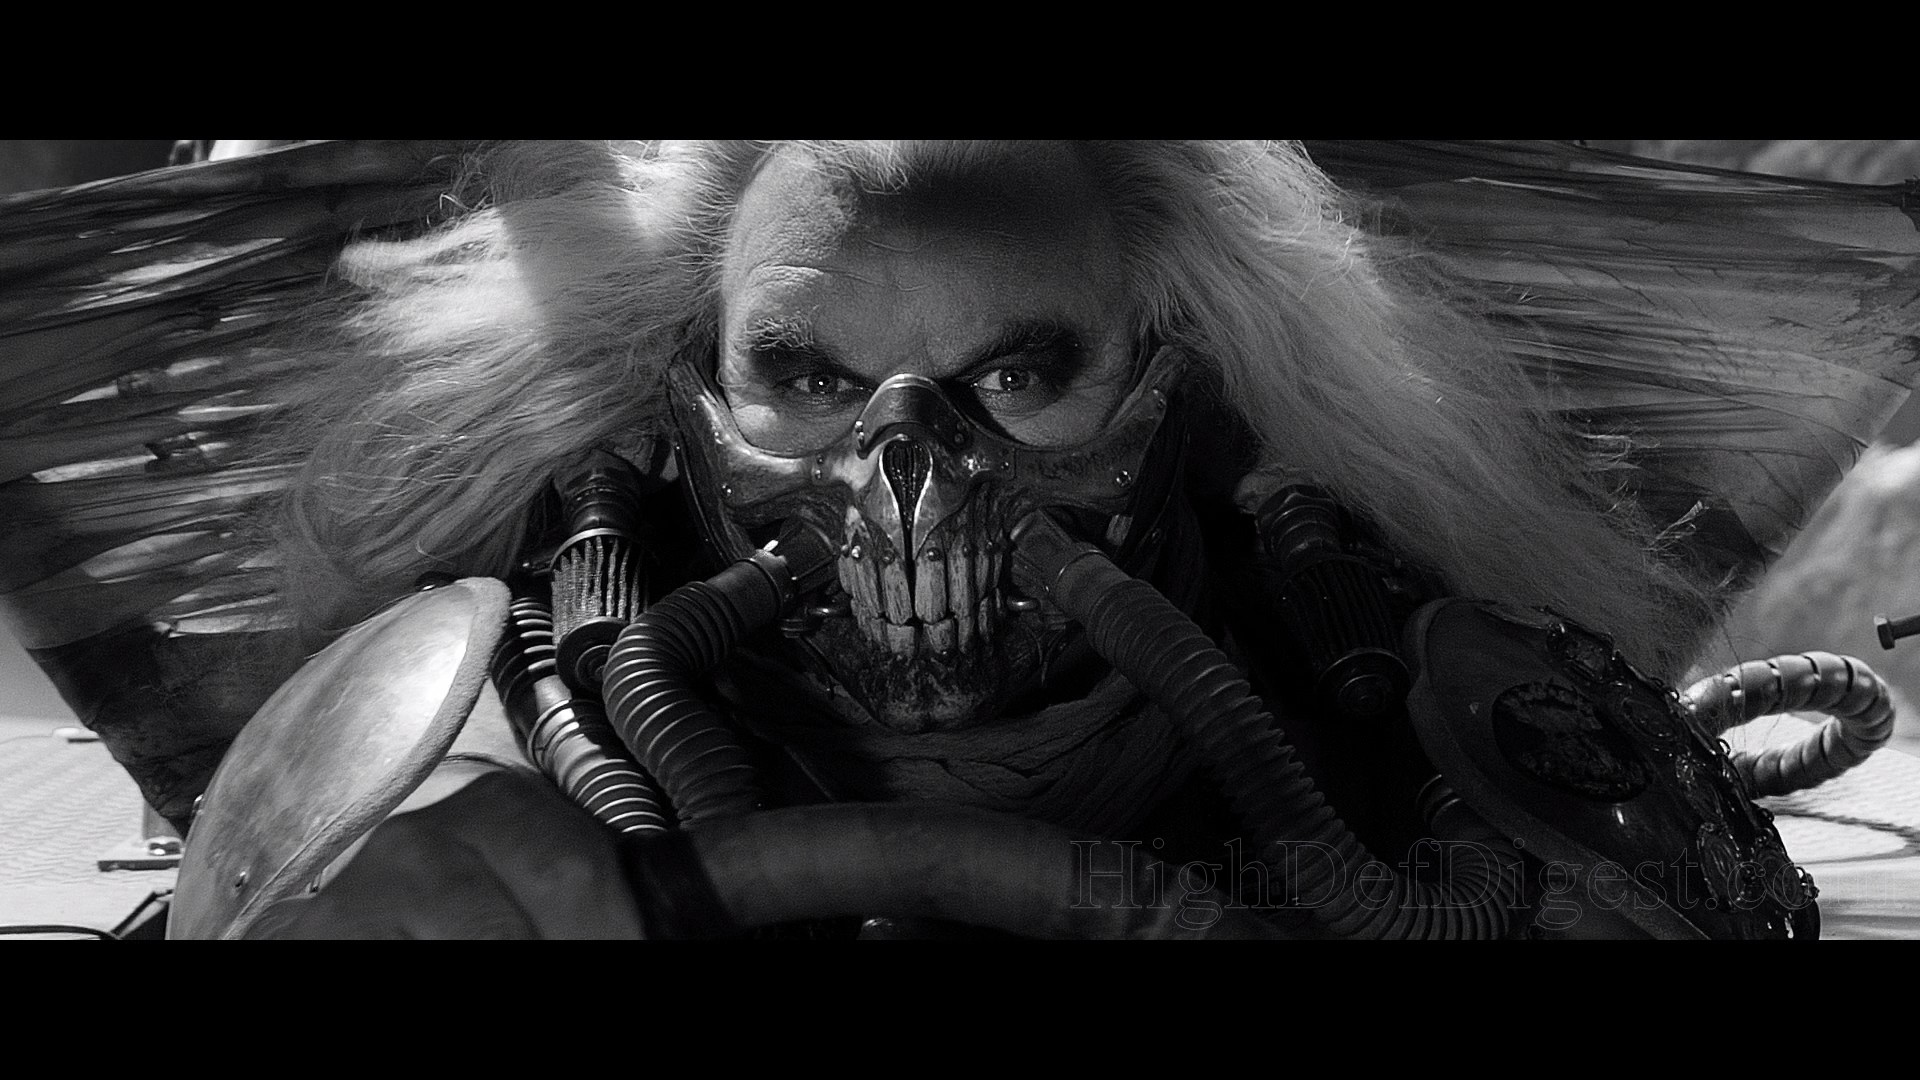 1920x1080 'Fury Road' goes ballistic with a brand new 1080p/AVC MPEG-4 encode,  created from a fresh remaster that was color graded to achieve the proper  grayscale.